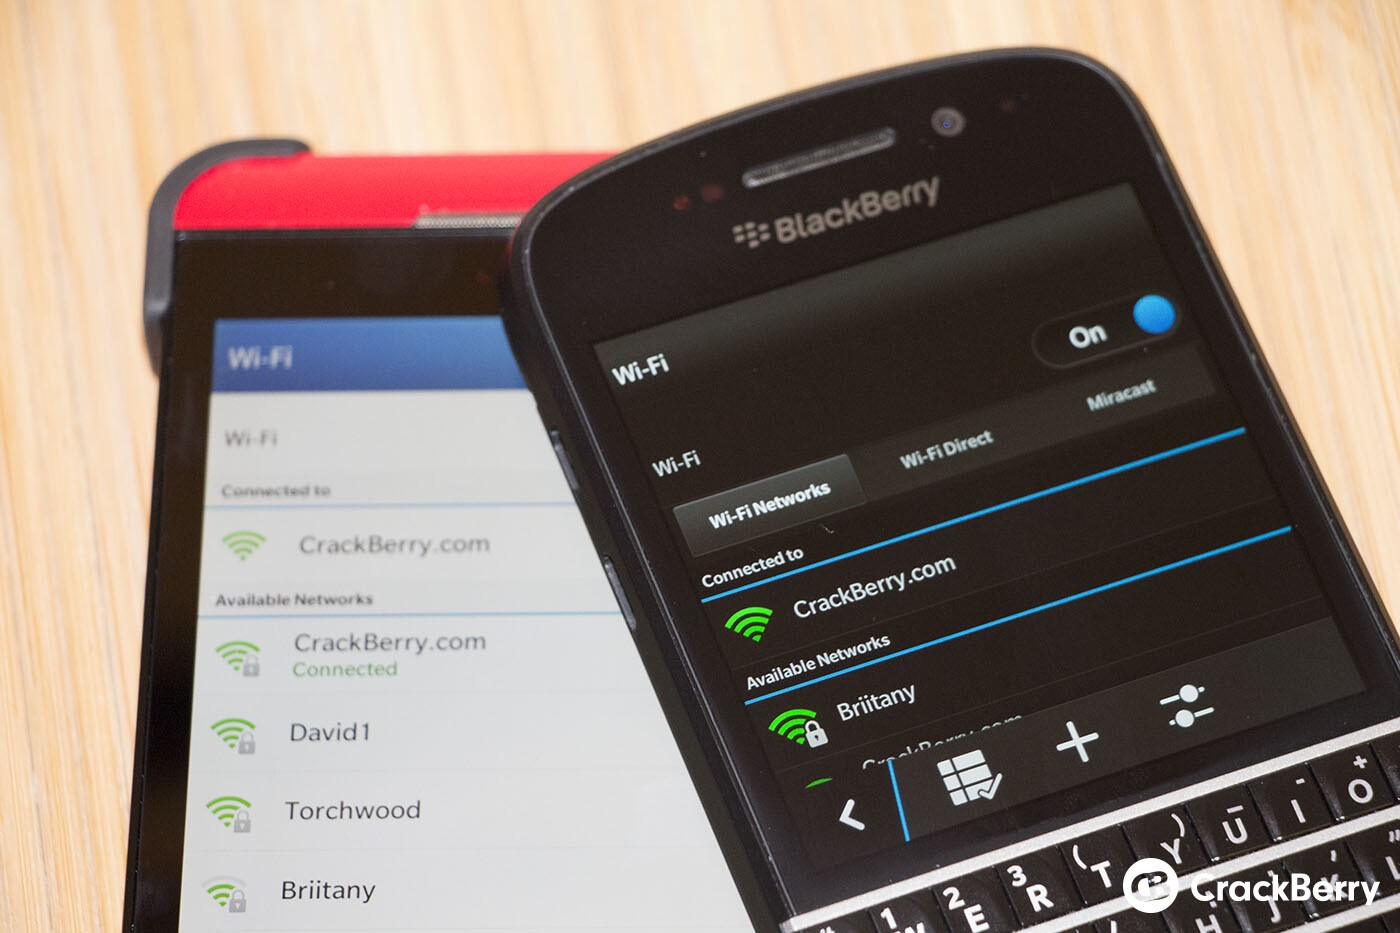 Miracast will not be available on the BlackBerry Z10, Wi-Fi